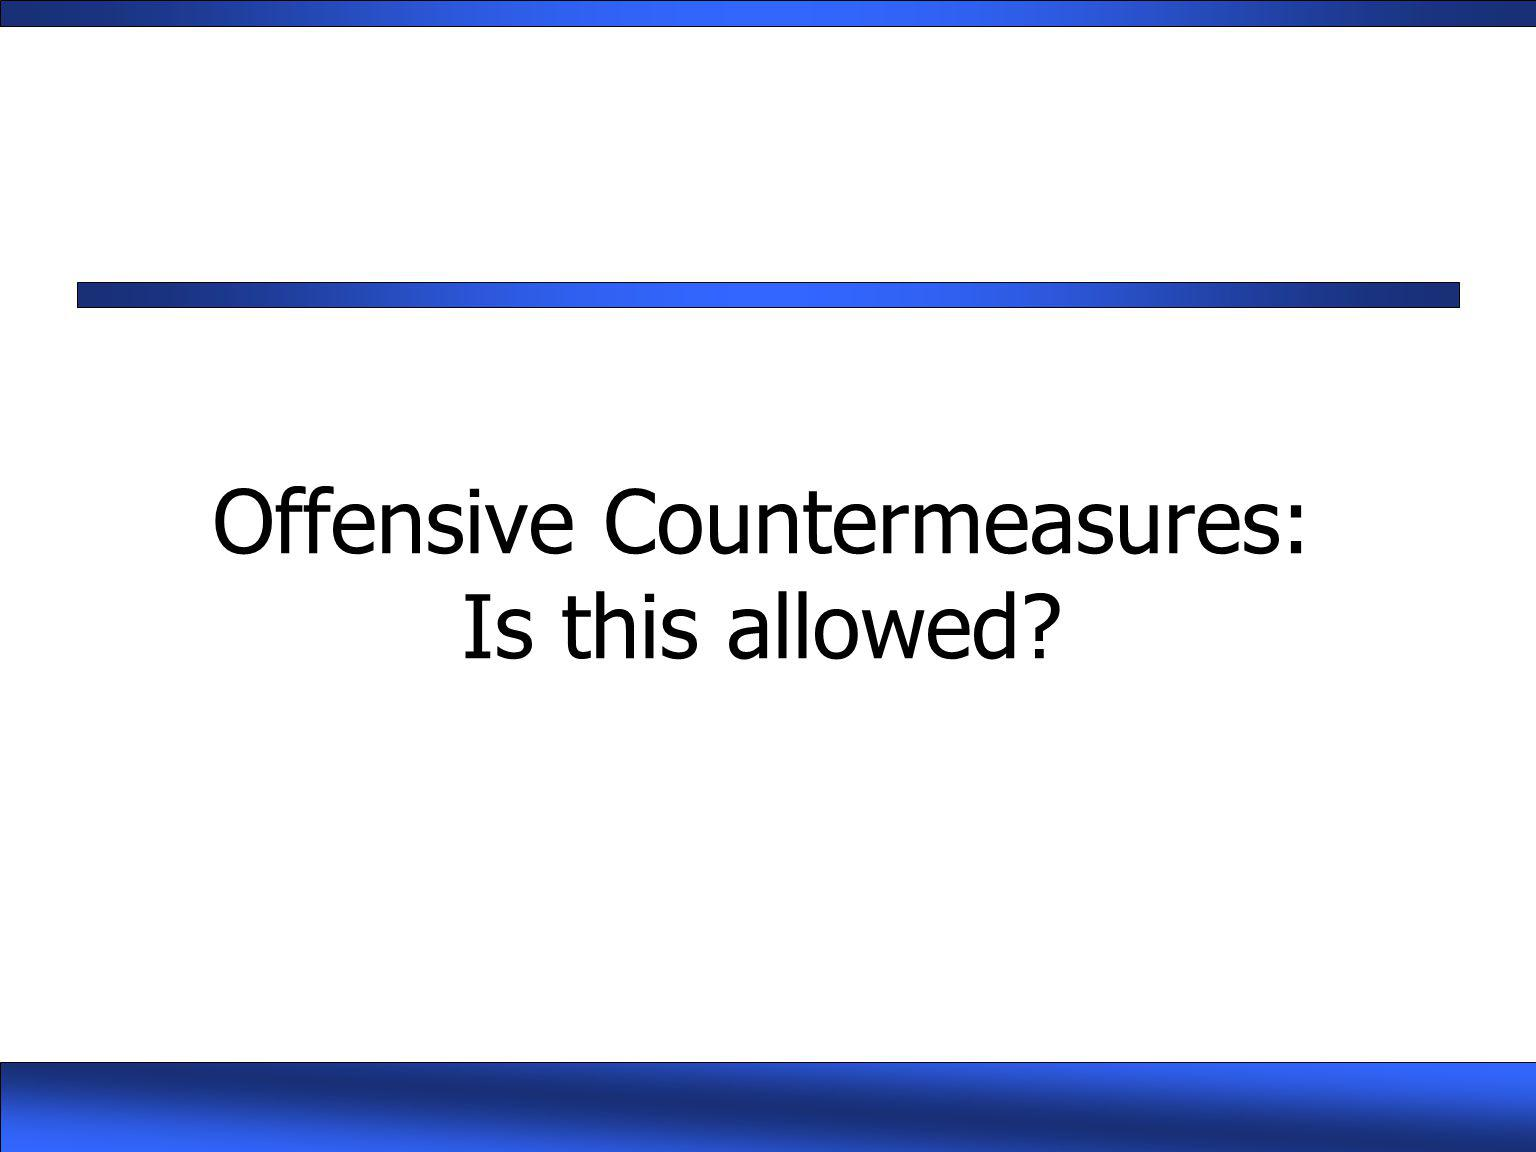 Offensive Countermeasures: Is this allowed?